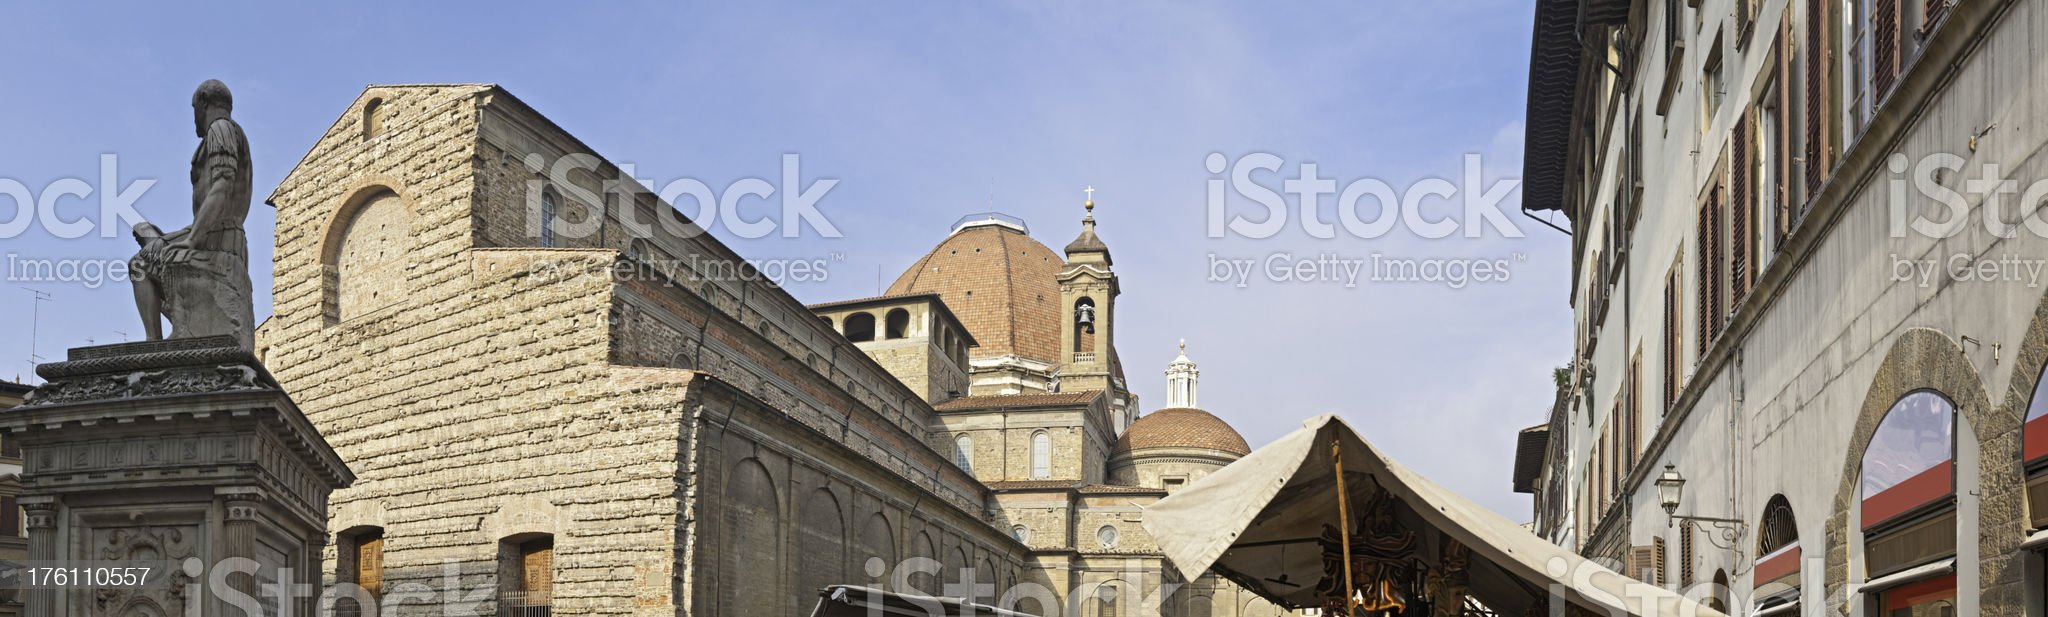 Florence market stalls and San Lorenzo piazza panorama Tuscany Italy royalty-free stock photo